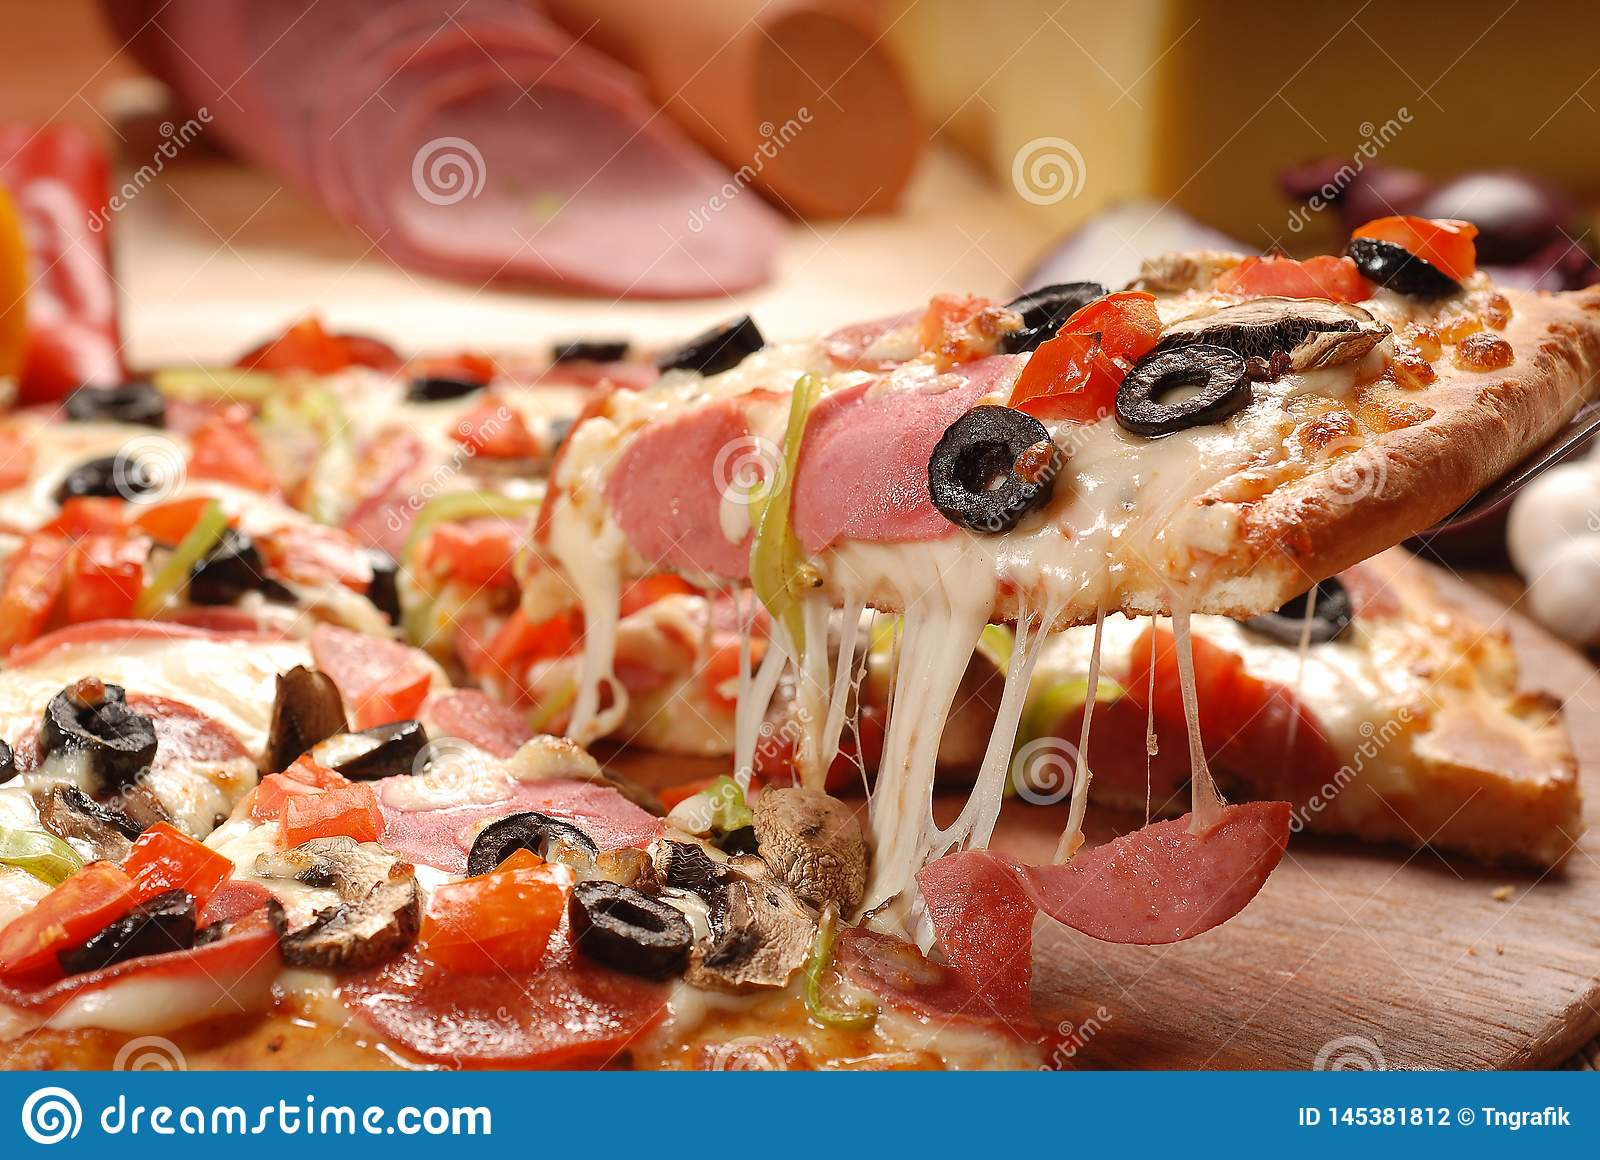 Hot pizza slice with melting cheese on a rustic wooden table